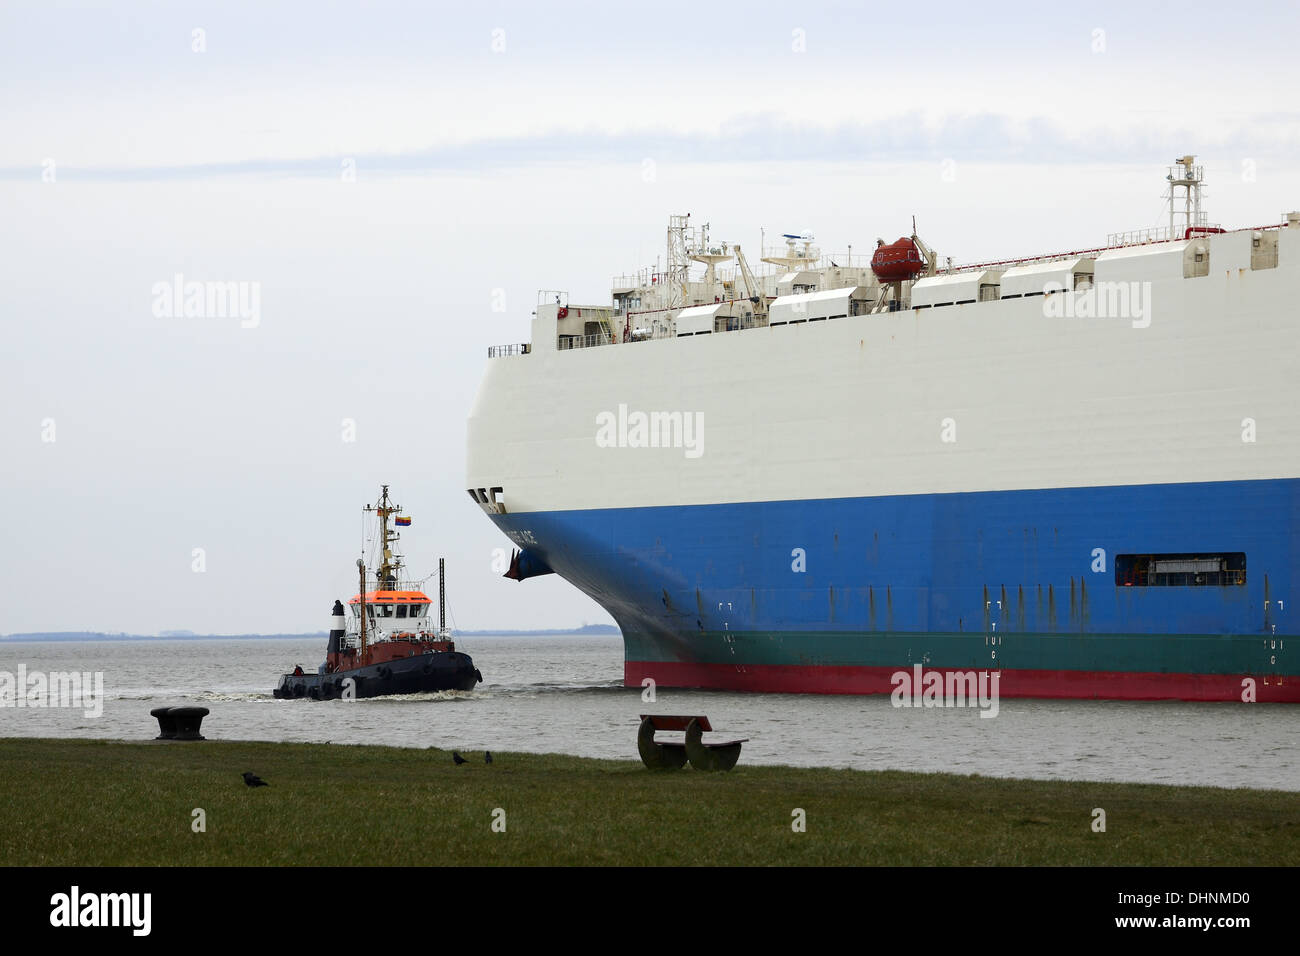 Tugs and overseas ferry - Stock Image